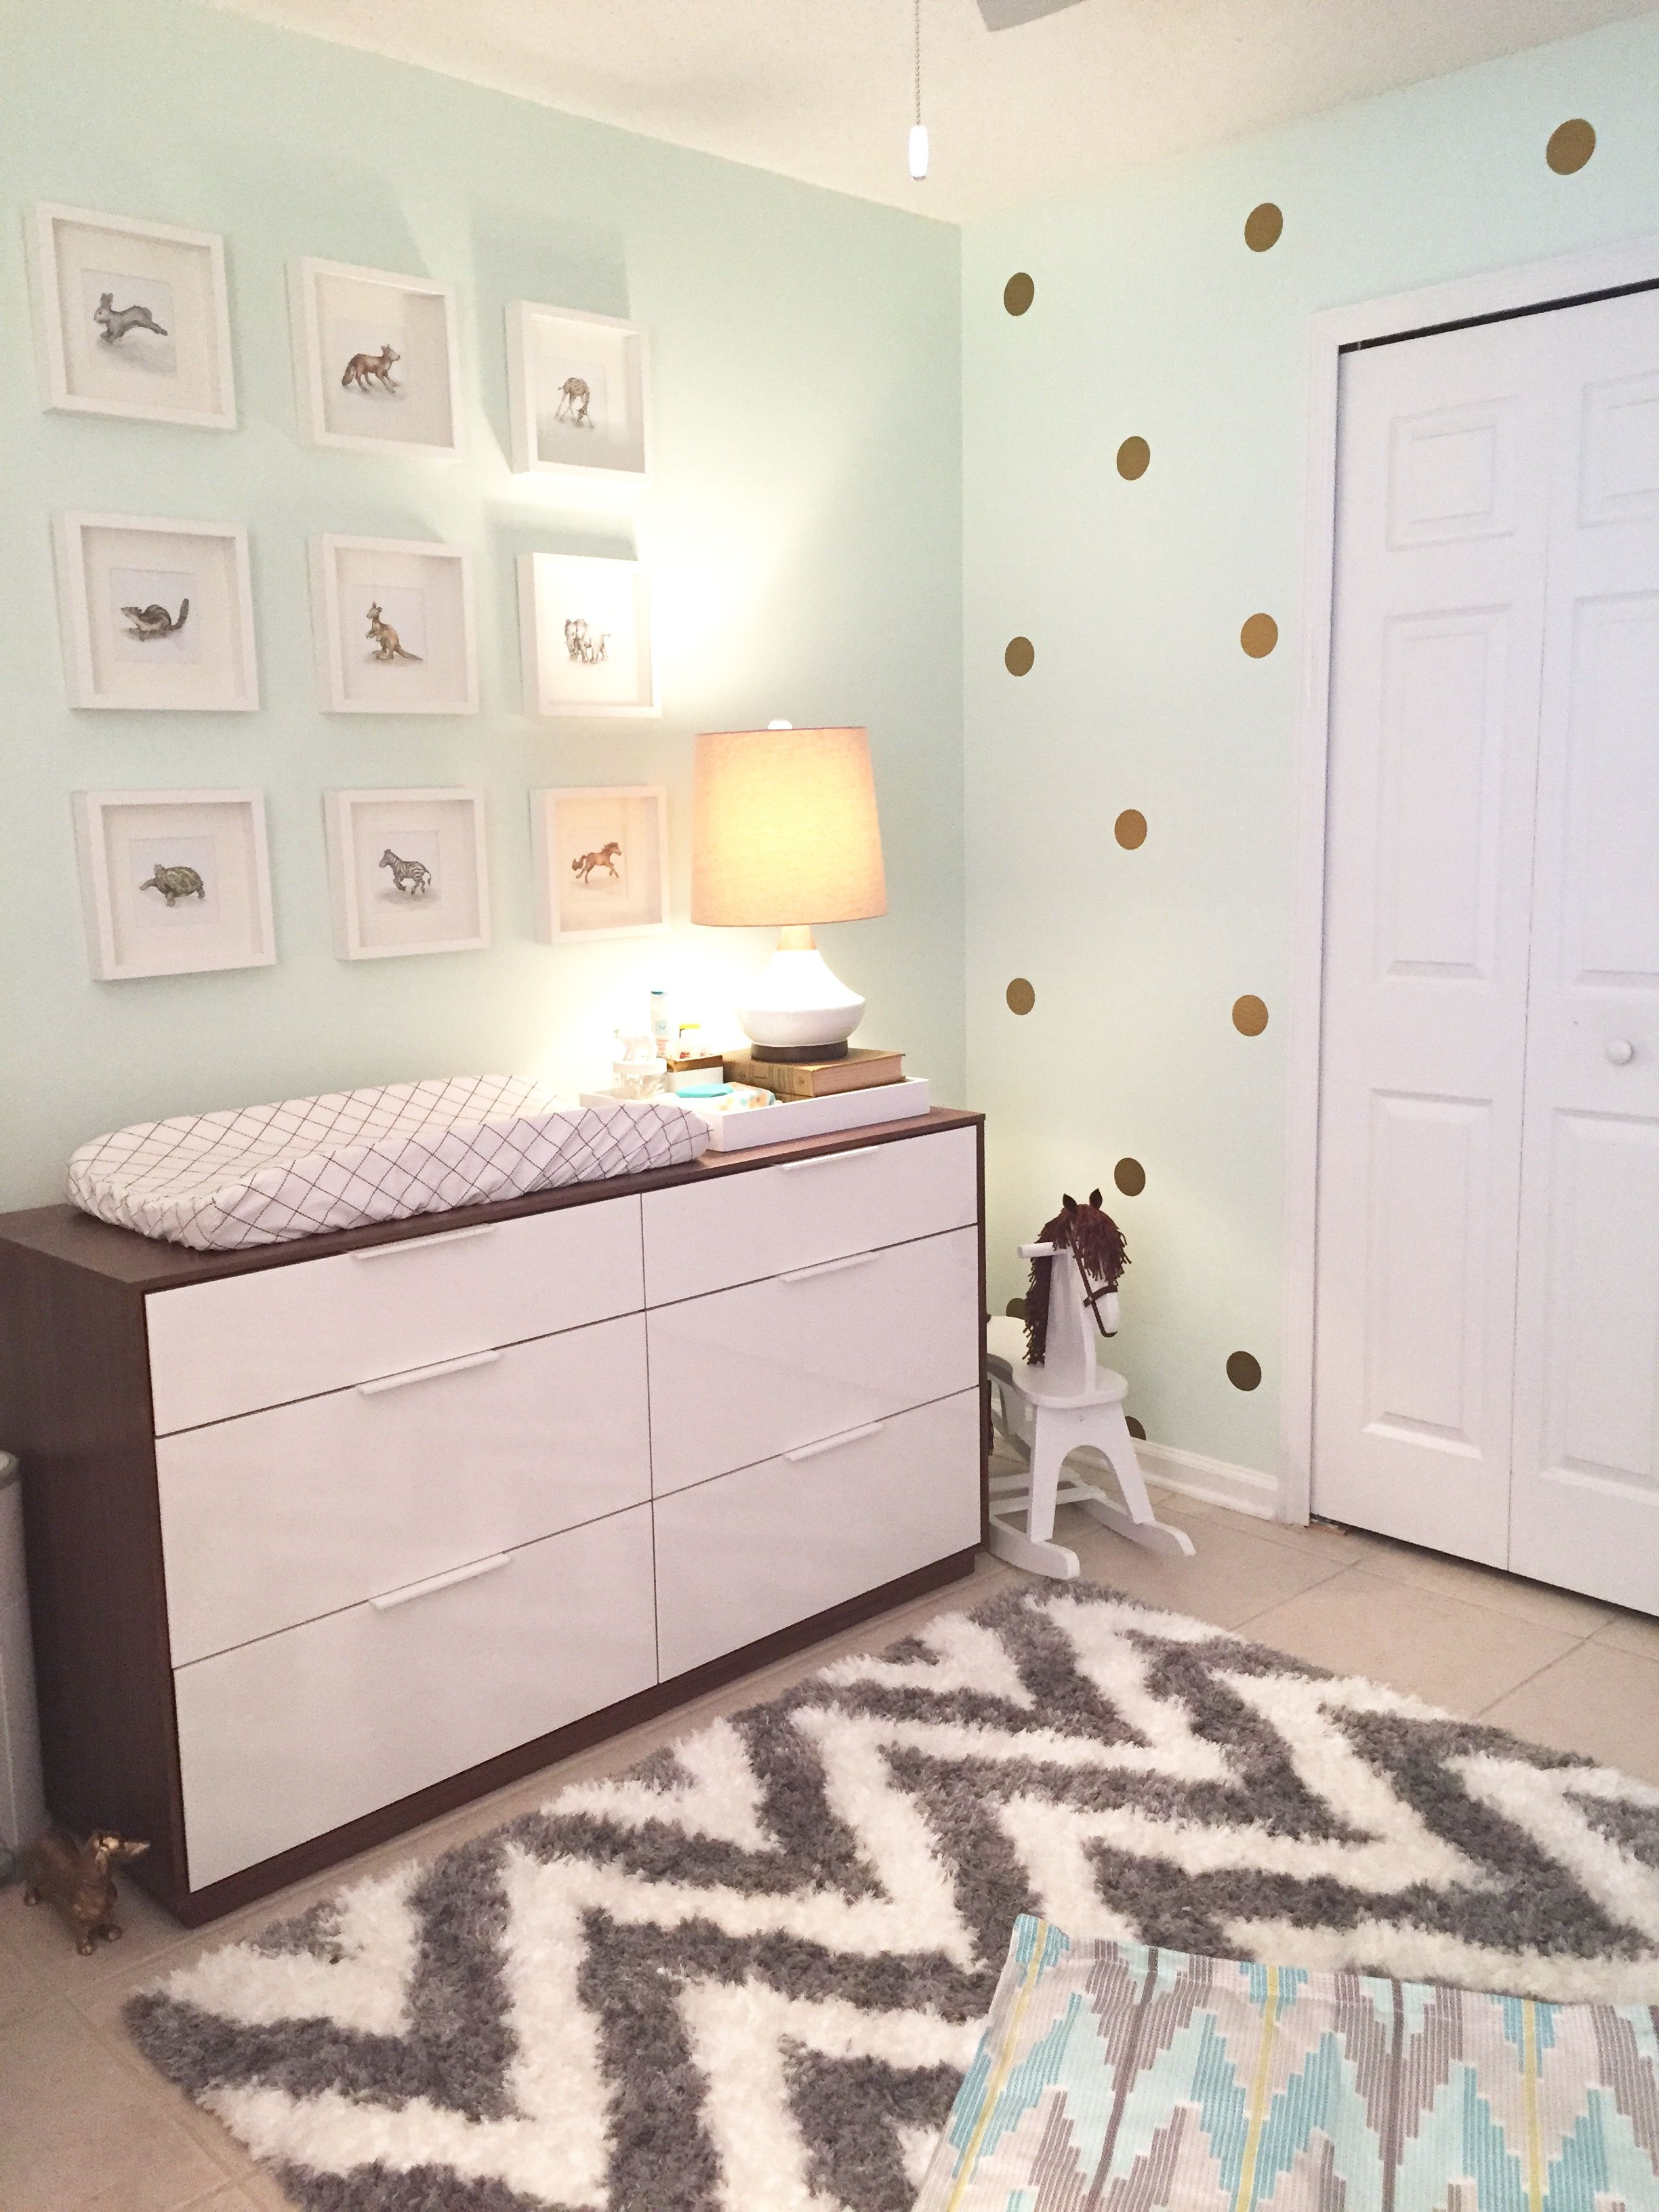 A modern gender neutral nursery featuring mint walls with gray and gold accents.